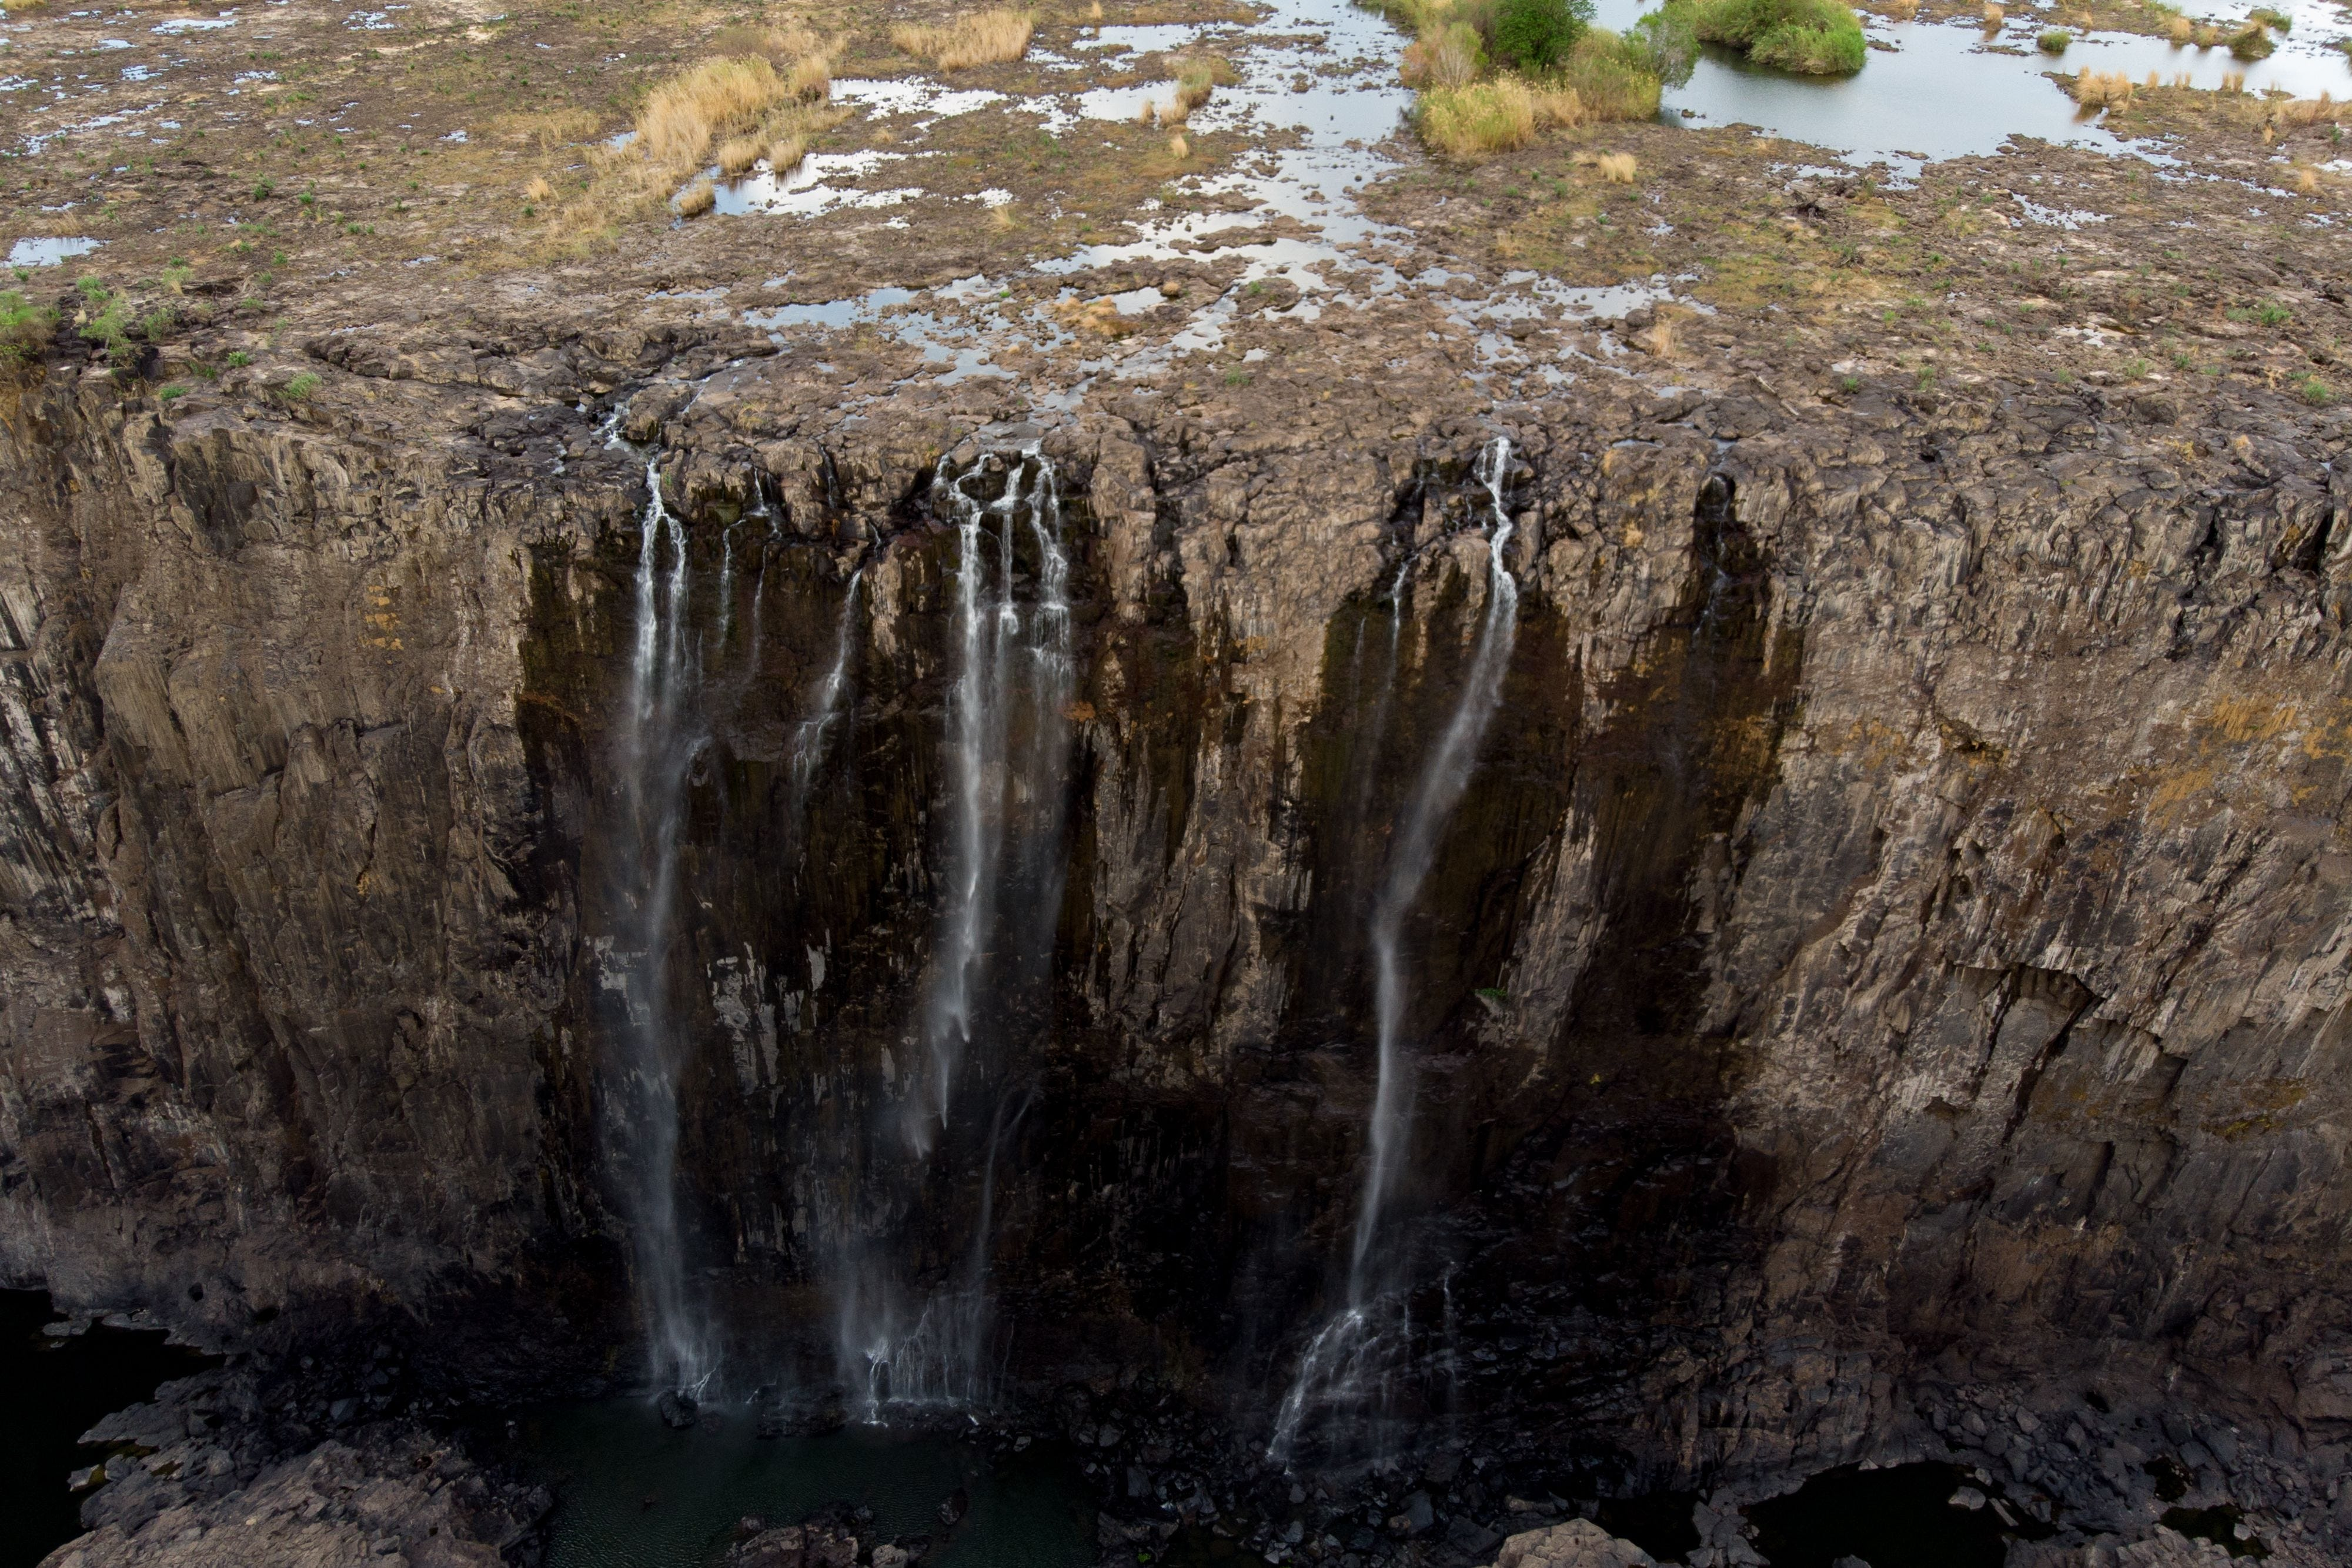 A general view of Victoria Falls, in Zimbabwe, on December 10, 2019. The Victoria Falls, a UNESCO world heritage site measuring 108 metres high and almost 2km wide has recorded the lowest levels in recent times due to a severe drought.  Water levels have improved in the past week following rains in the upper Zambezi river yet it is still lower than what it normally carries during this season.